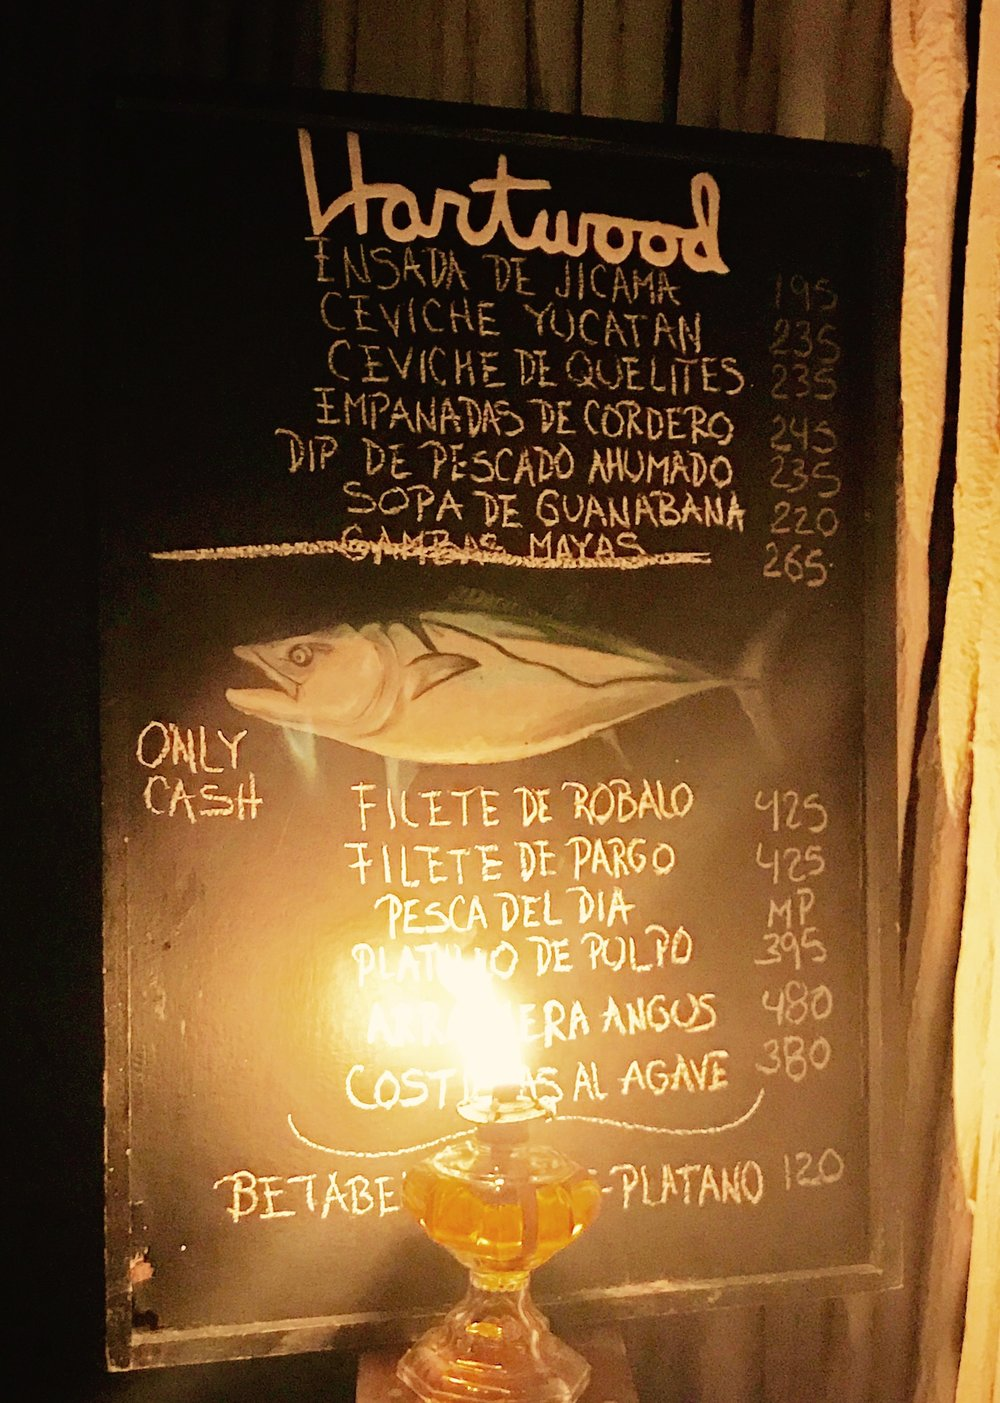 The chalkboard menu at Heartwood updated daily